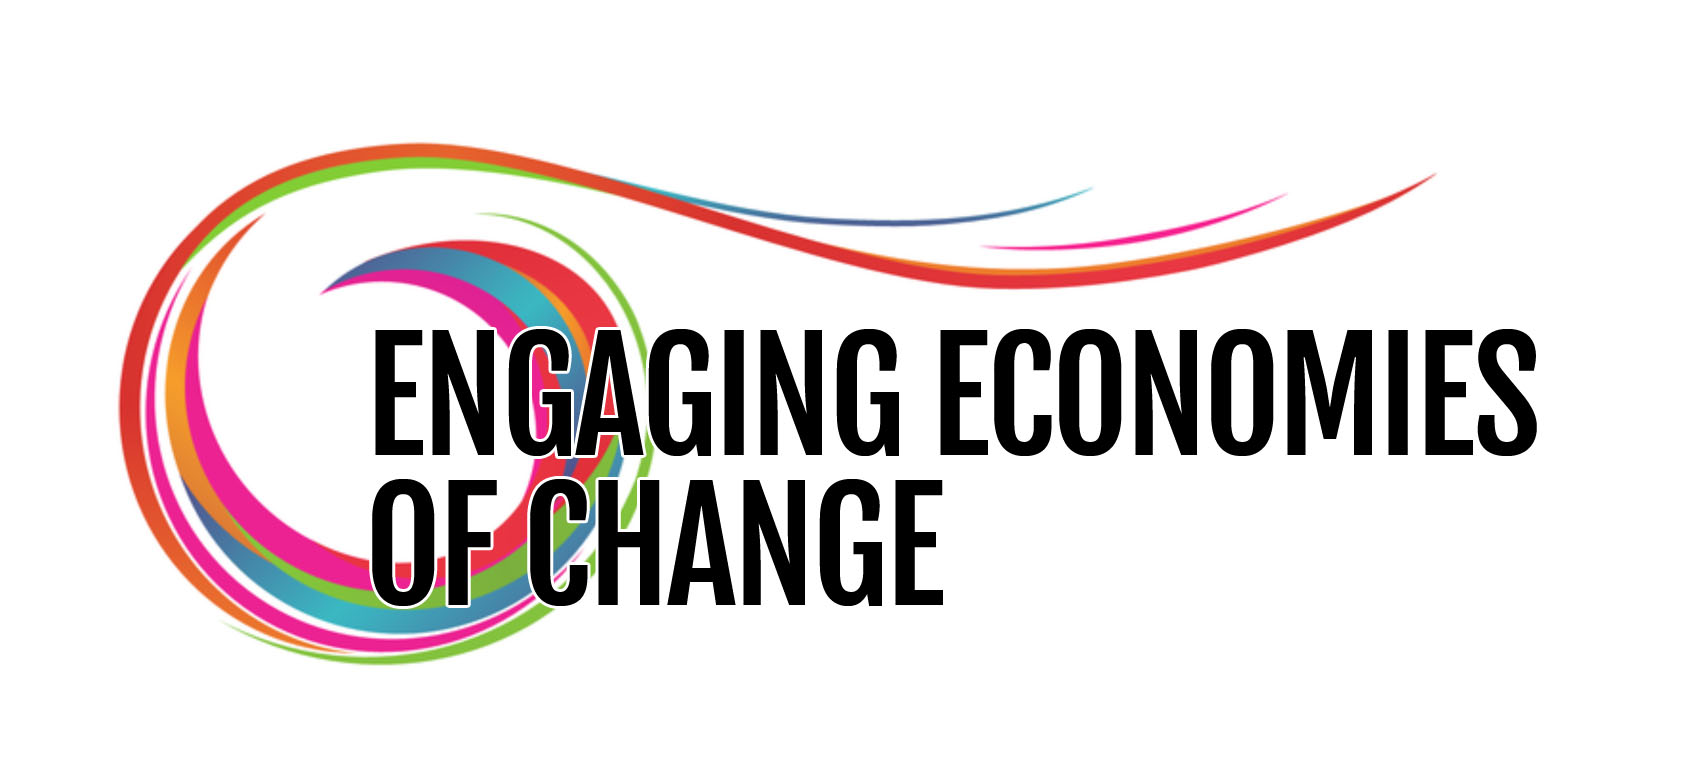 Engaging Economies of Change event logo